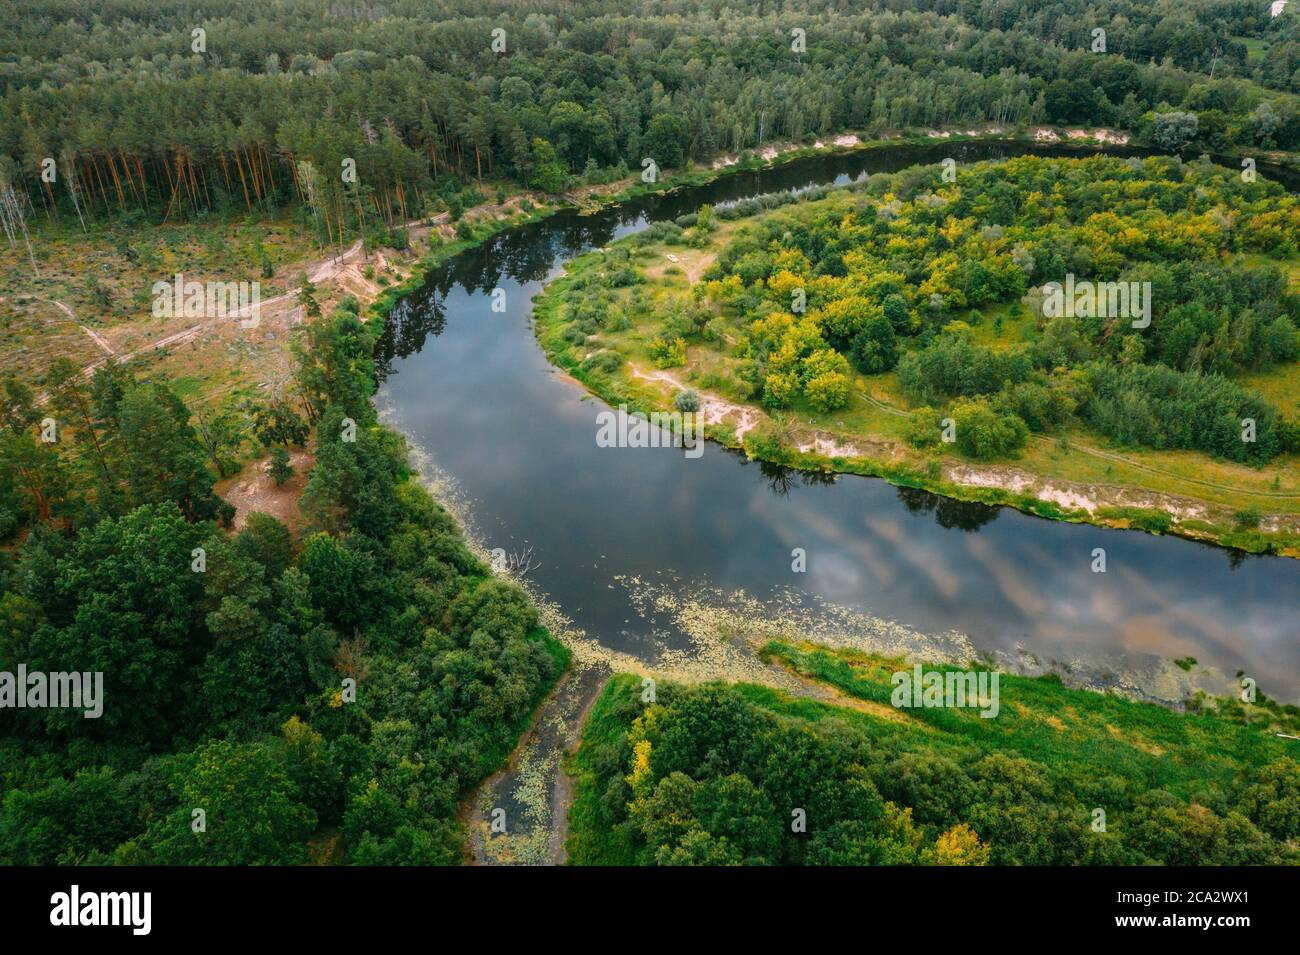 Aerial View Green Forest And River Landscape In Spring Evening. Top View Of Beautiful European Nature From High Attitude In Summer Season. Drone Stock Photo